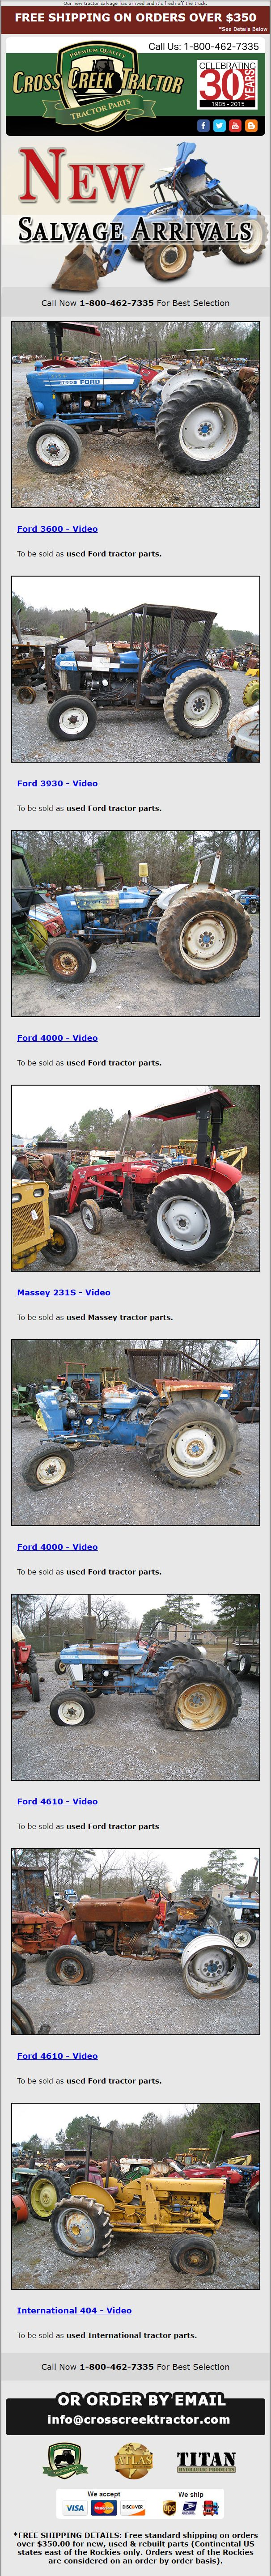 New Tractor Salvage Alerts Email